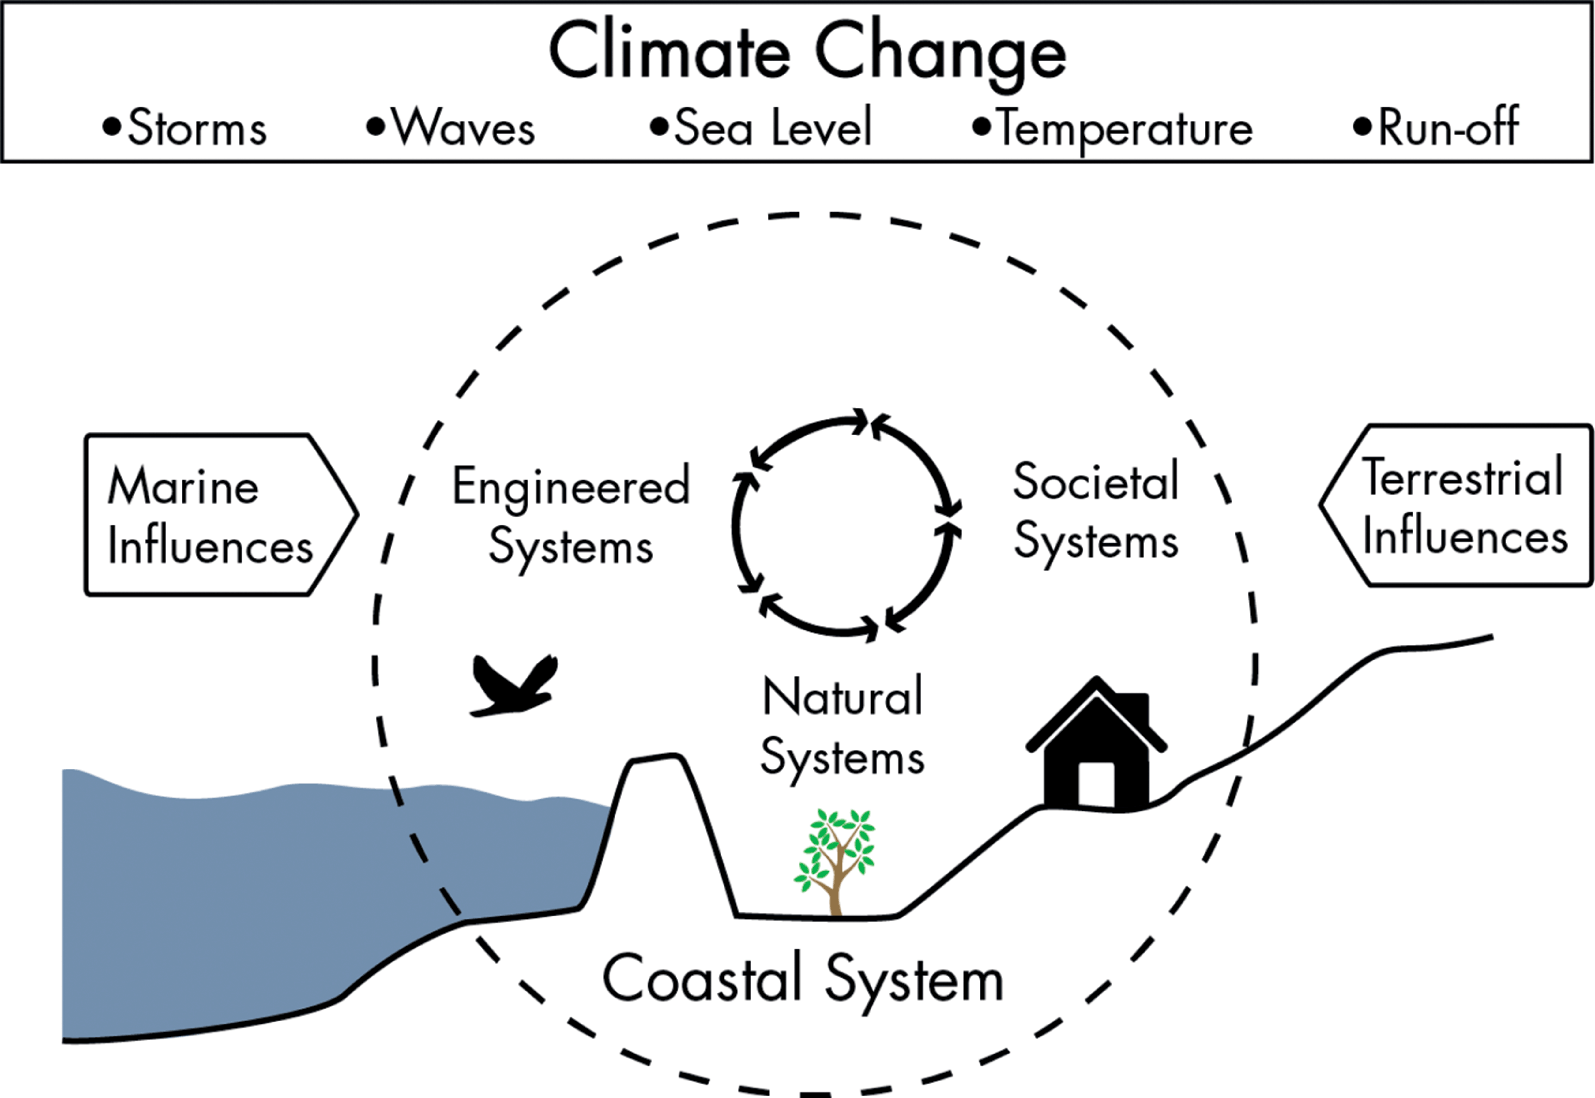 Urban Areas in Coastal Zones (Chapter 9) - Climate Change